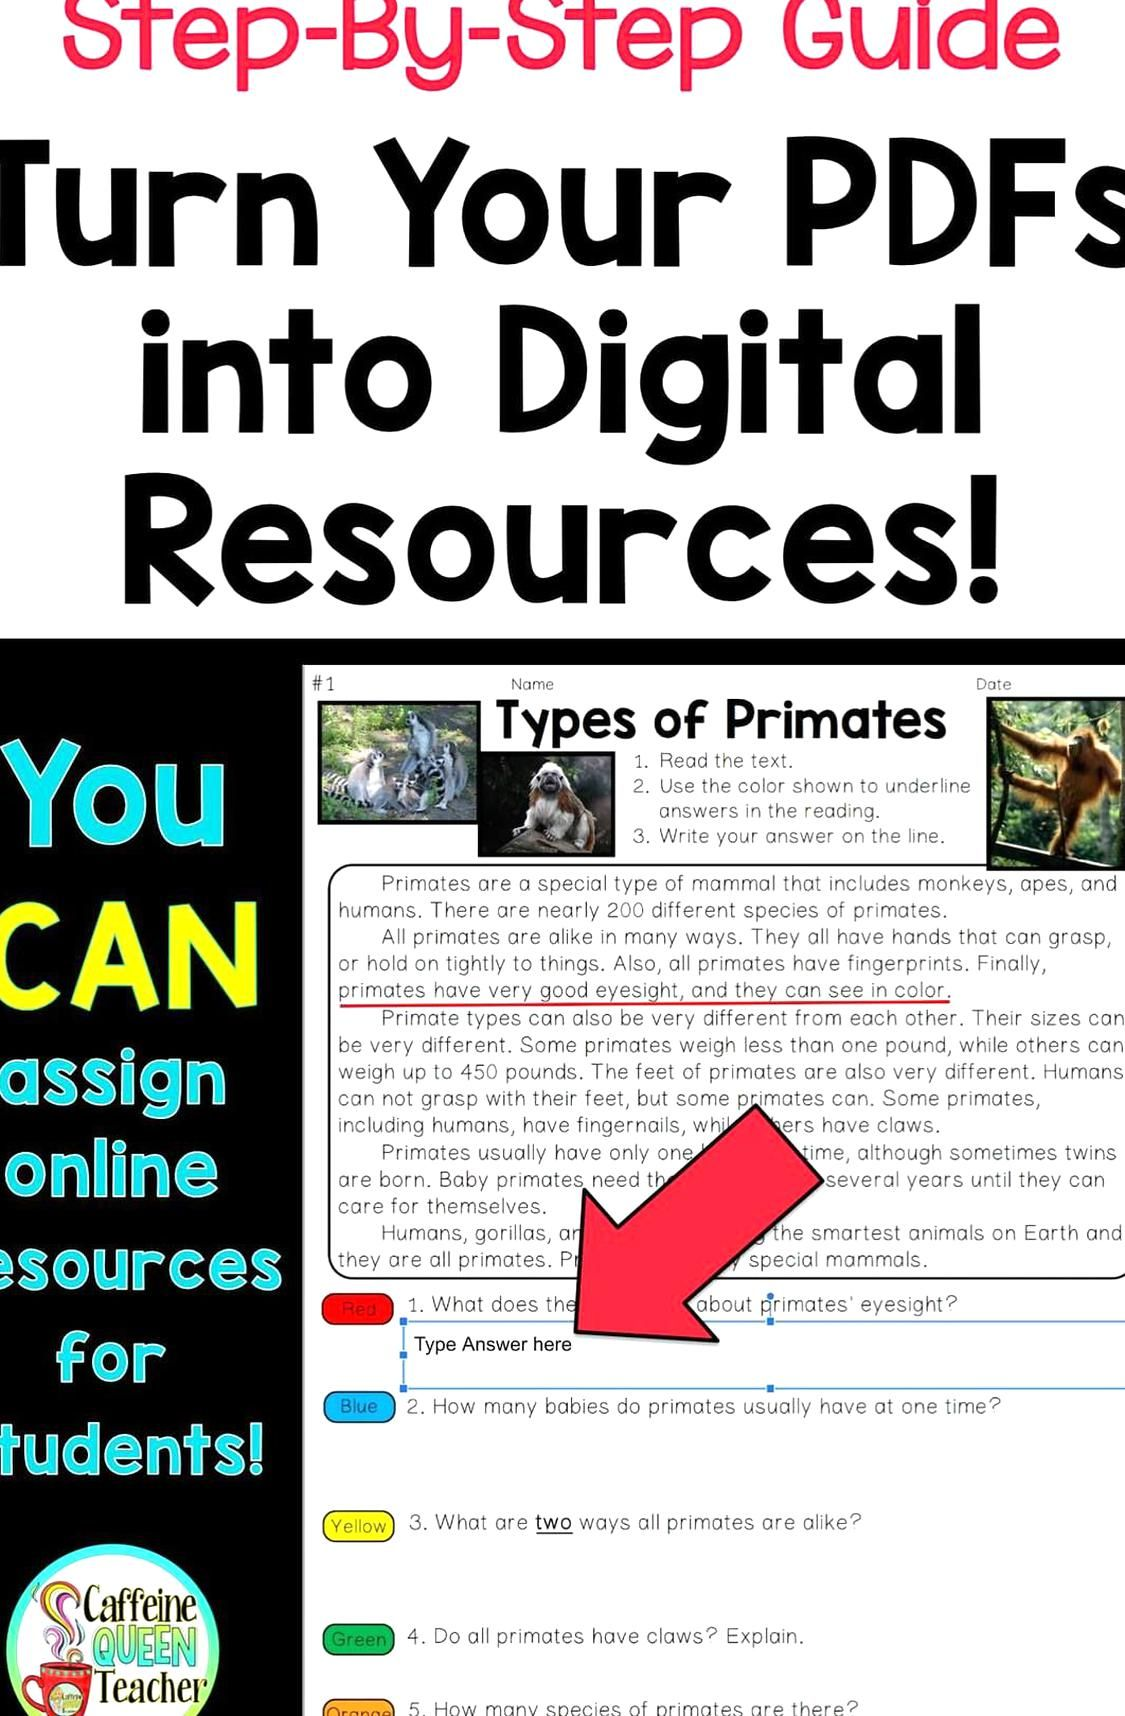 Turning a worksheet or PDF into a digital resource for